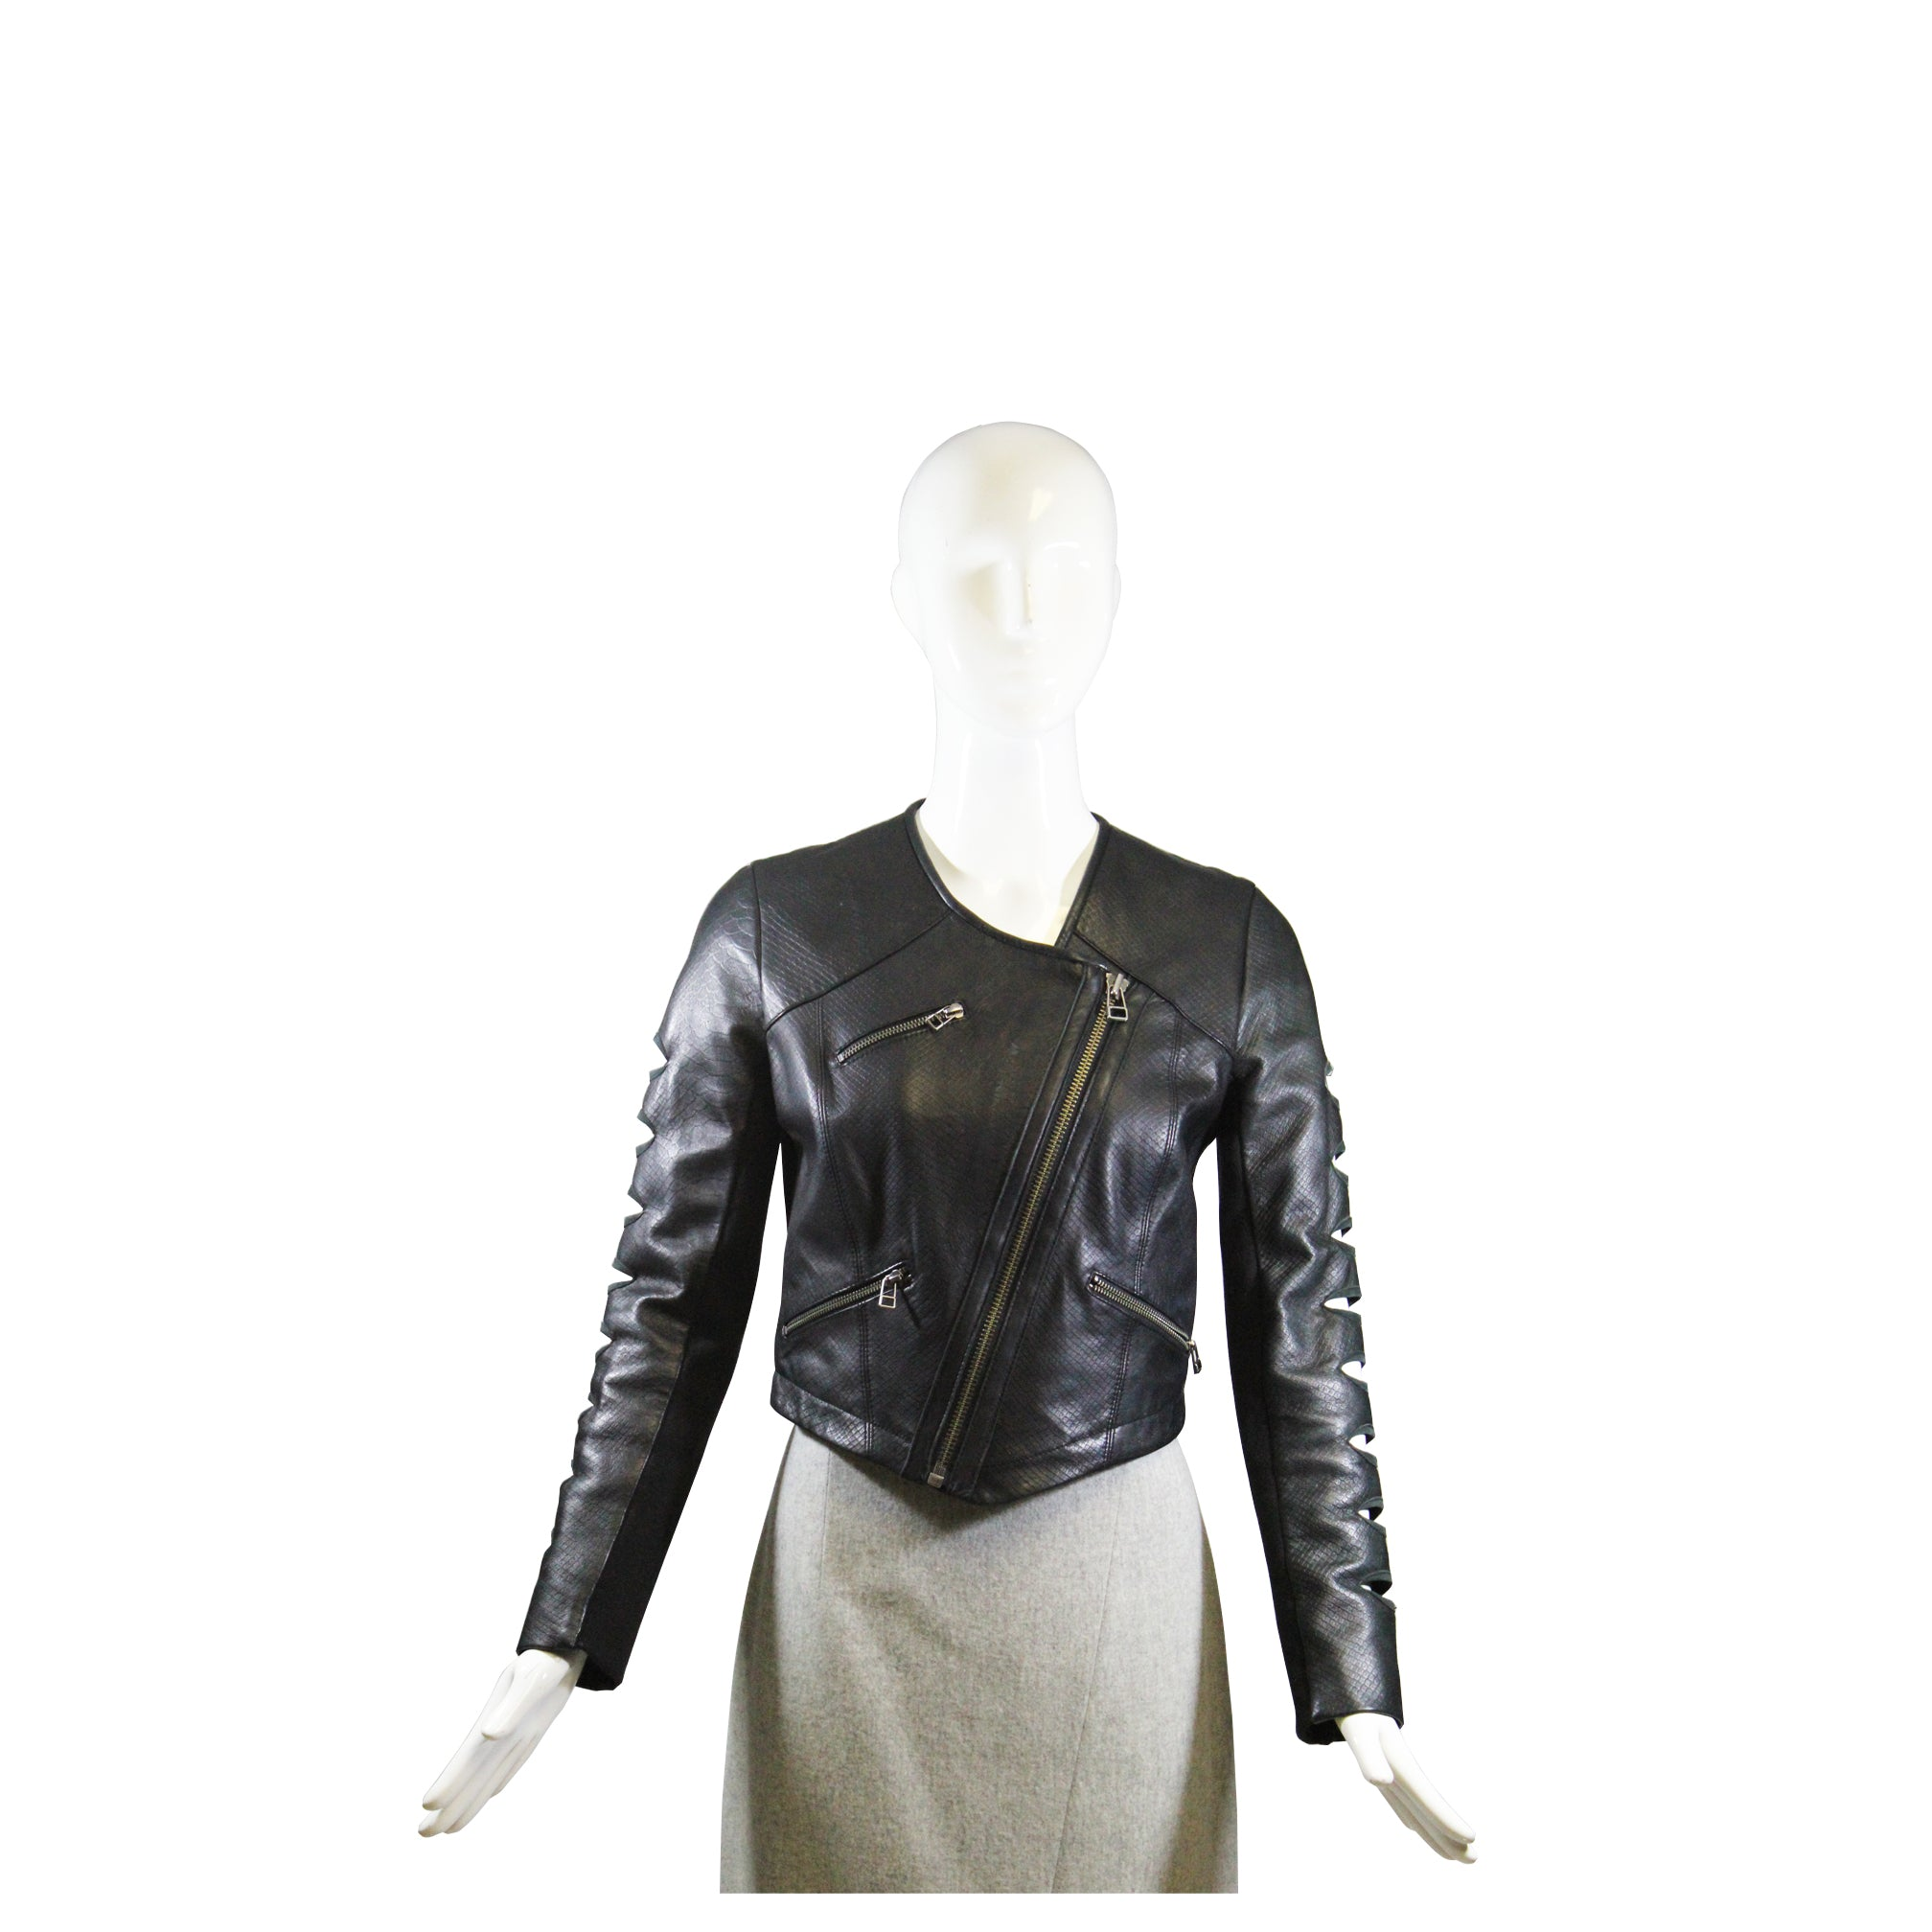 YIGAL AZROUEL Black Python Embossed Leather Cut Out Asymmetric Zip Moto Jacket 6